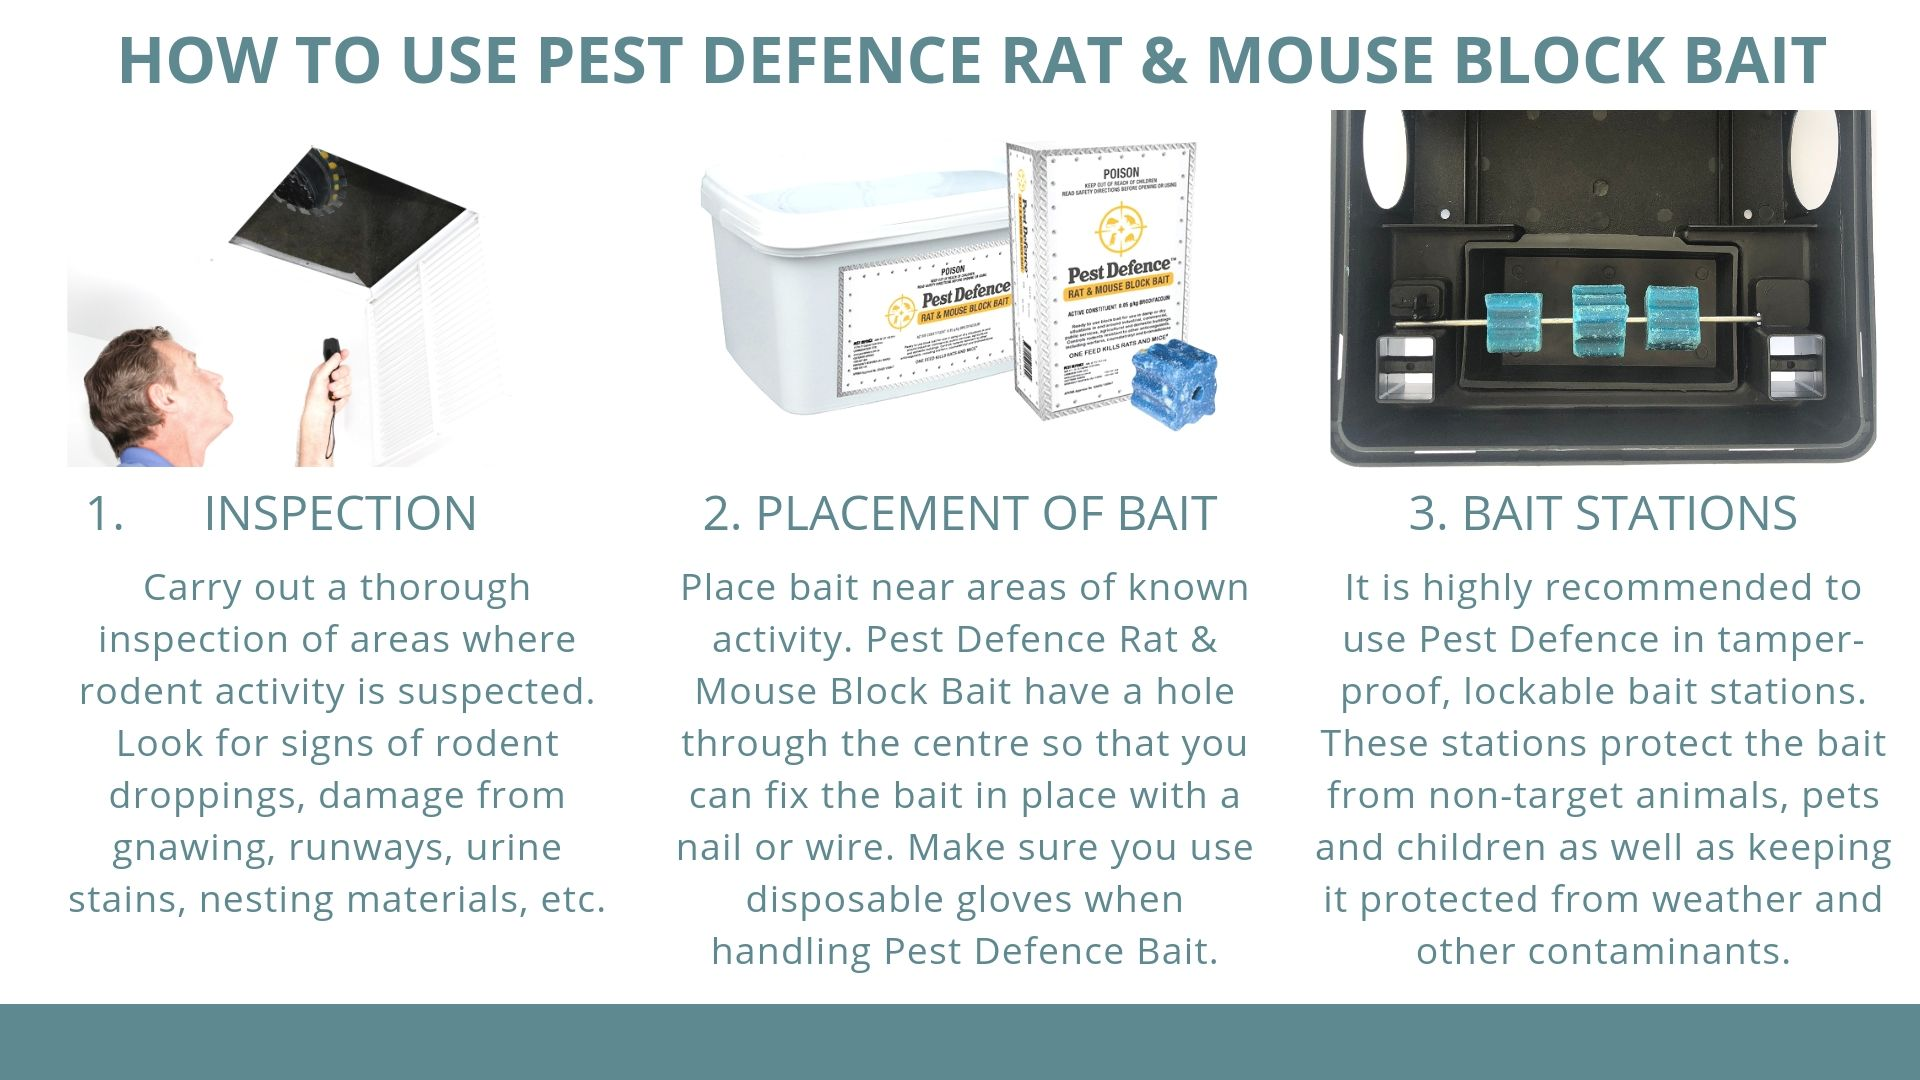 How to use Pest Defence Rat & Mouse Block Bait